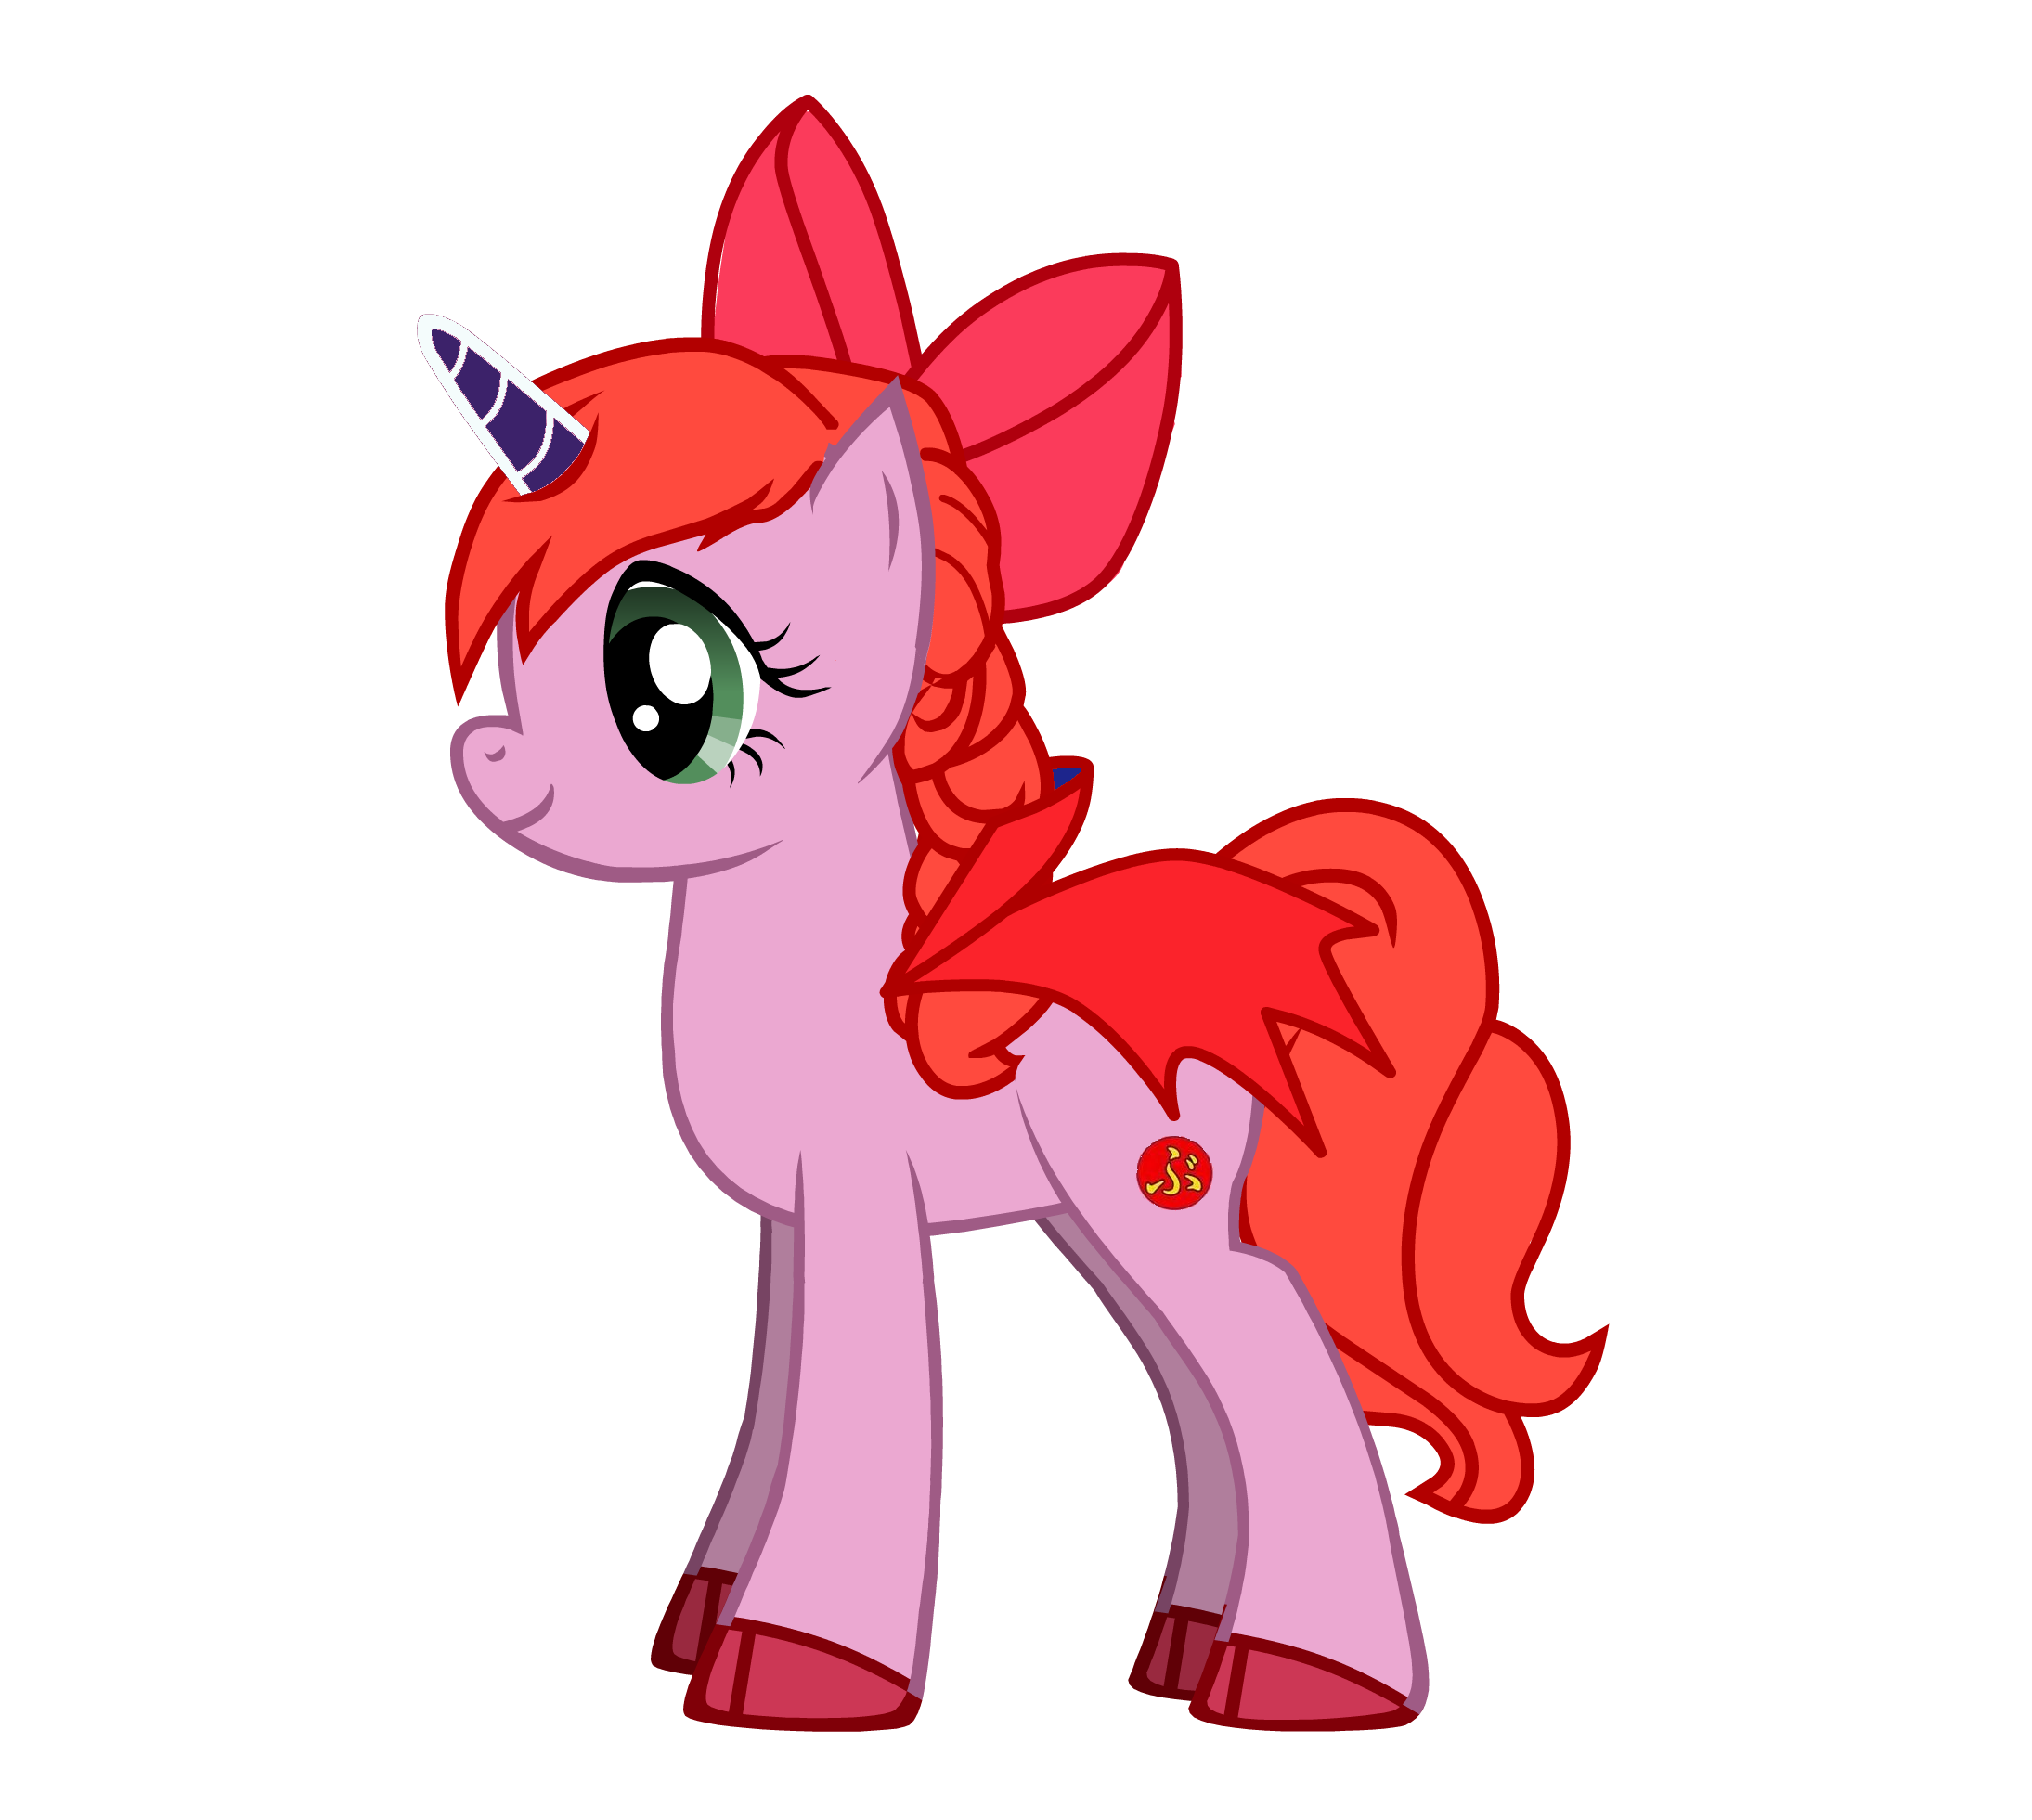 Buurin (pony Version) By Neogms On DeviantART